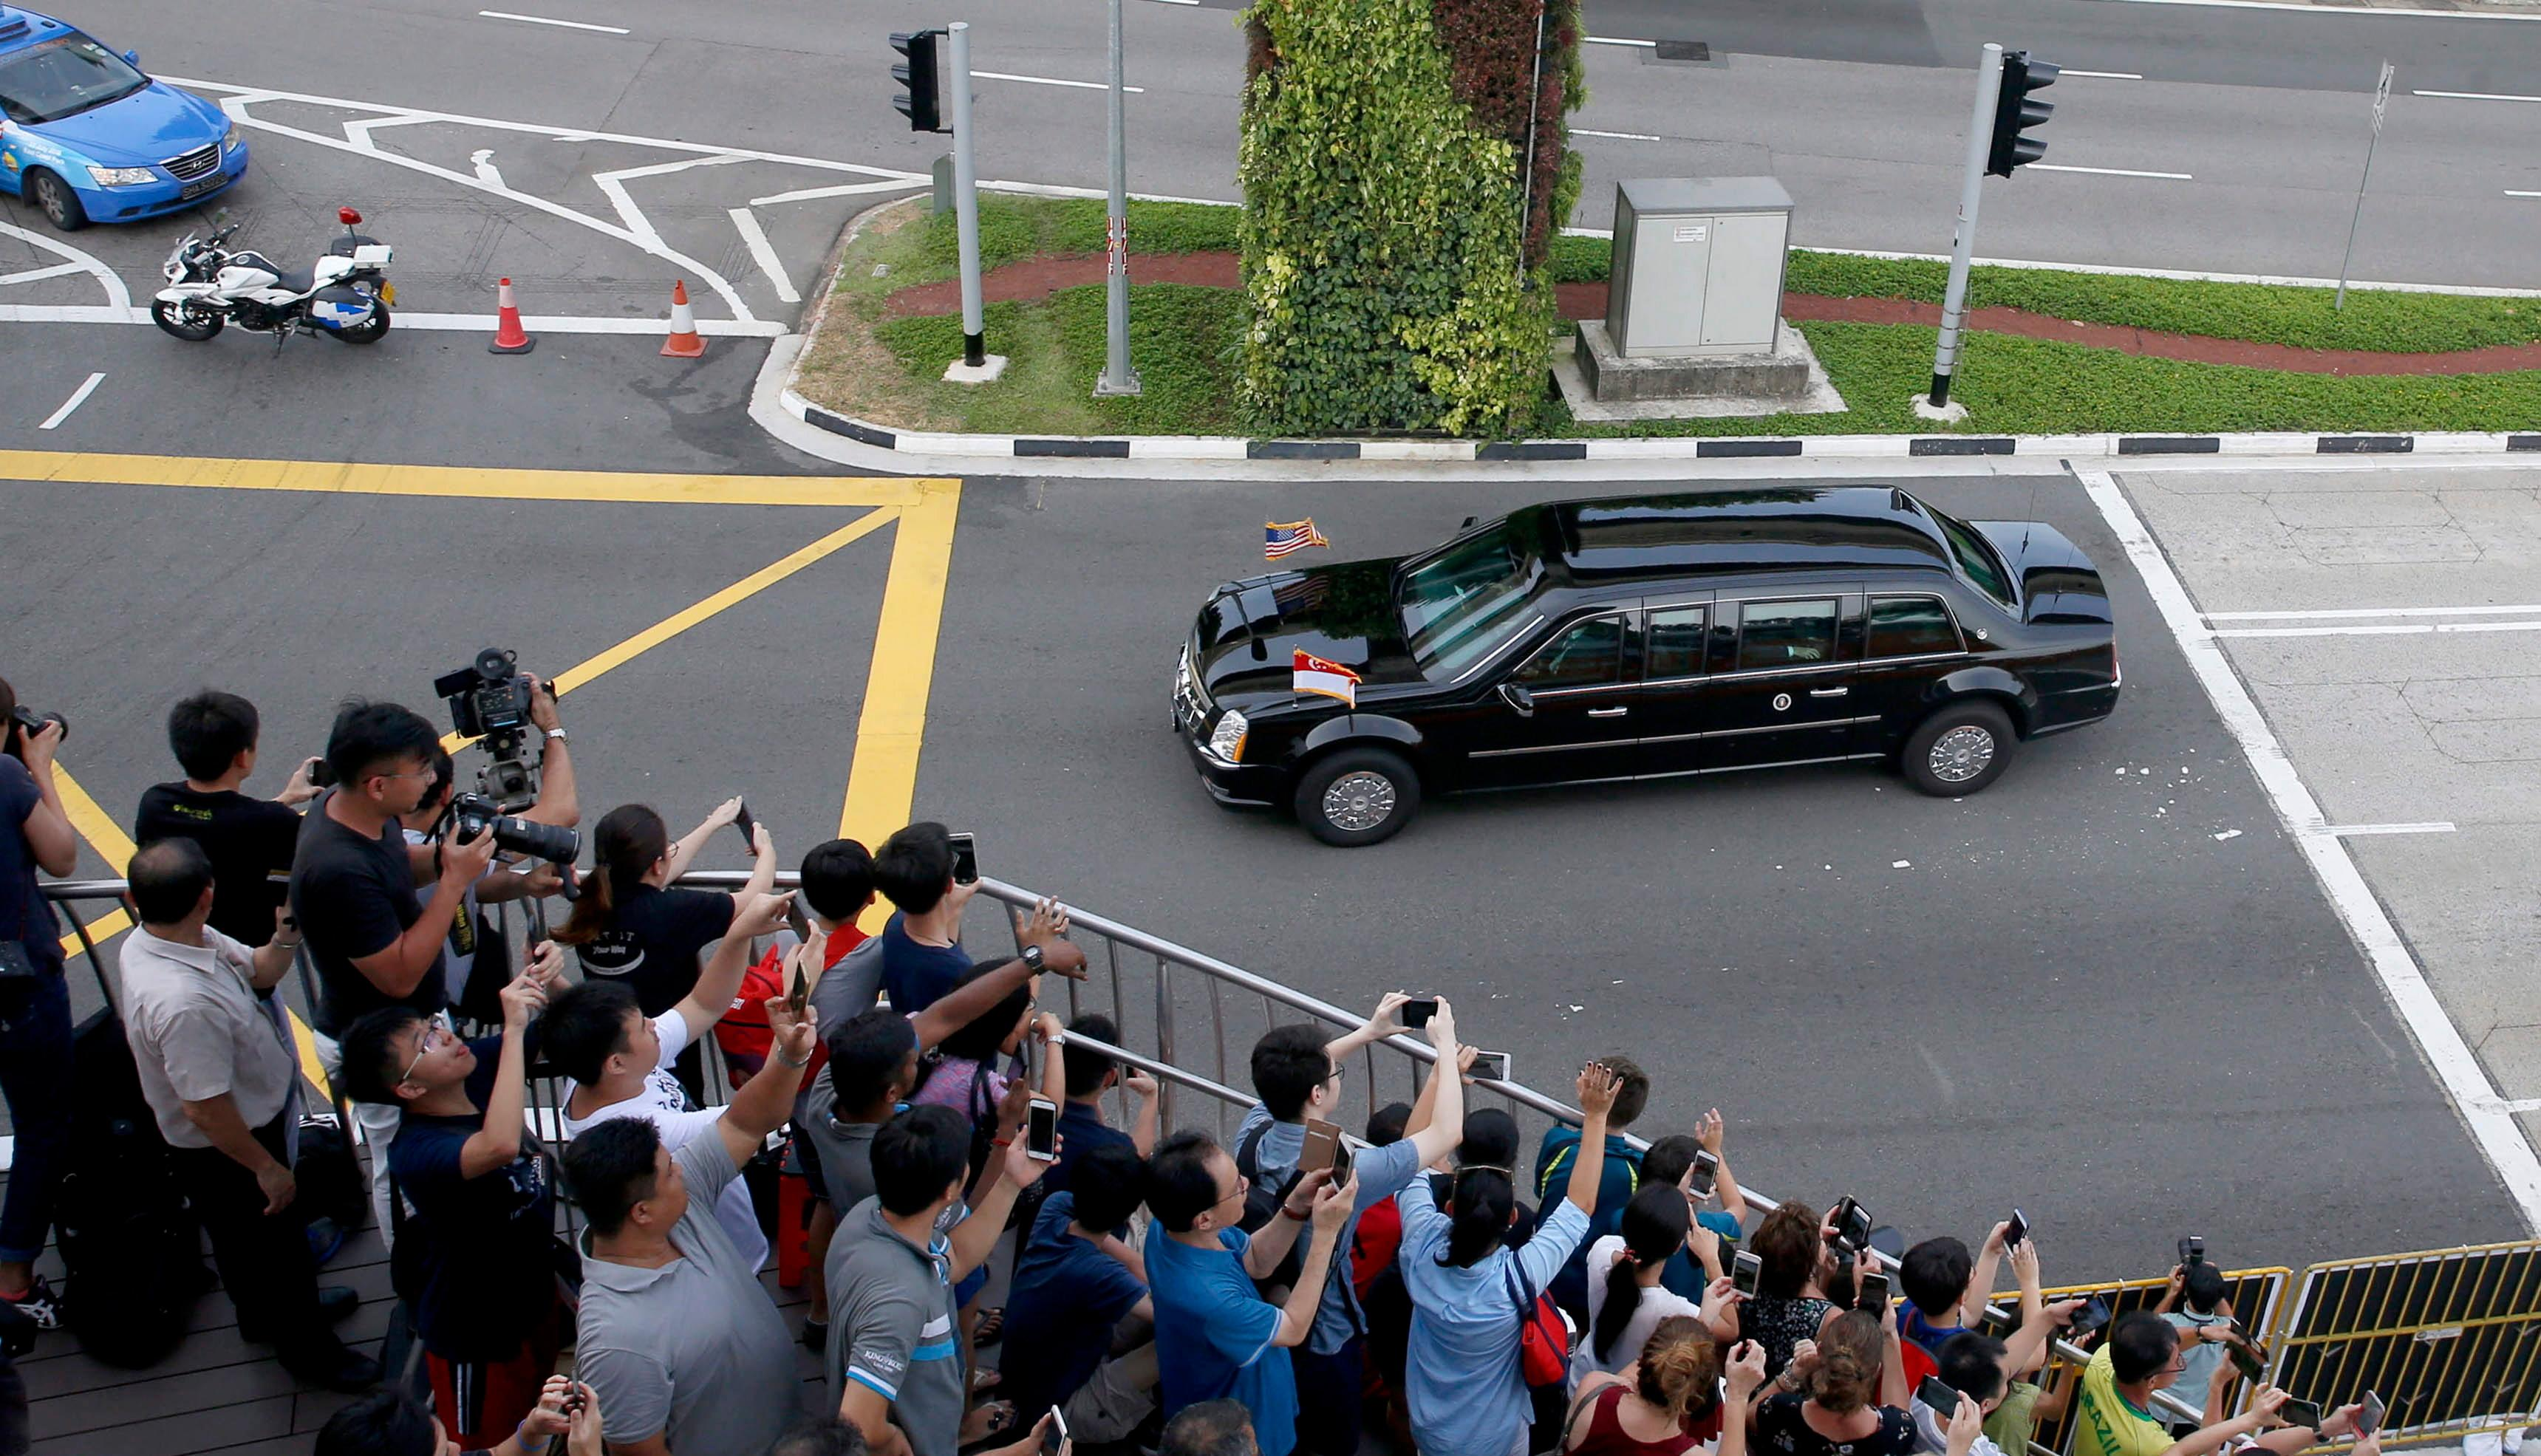 <p>People wave and take photos as the car carrying US President Donald J. Trump leaves Sentosa Island after a historic summit with North Korean leader Kim Jong-un, in Singapore, June 12, 2018. (Photo: Lynn Bo Bo/EPA-EFE/REX/Shutterstock) </p>